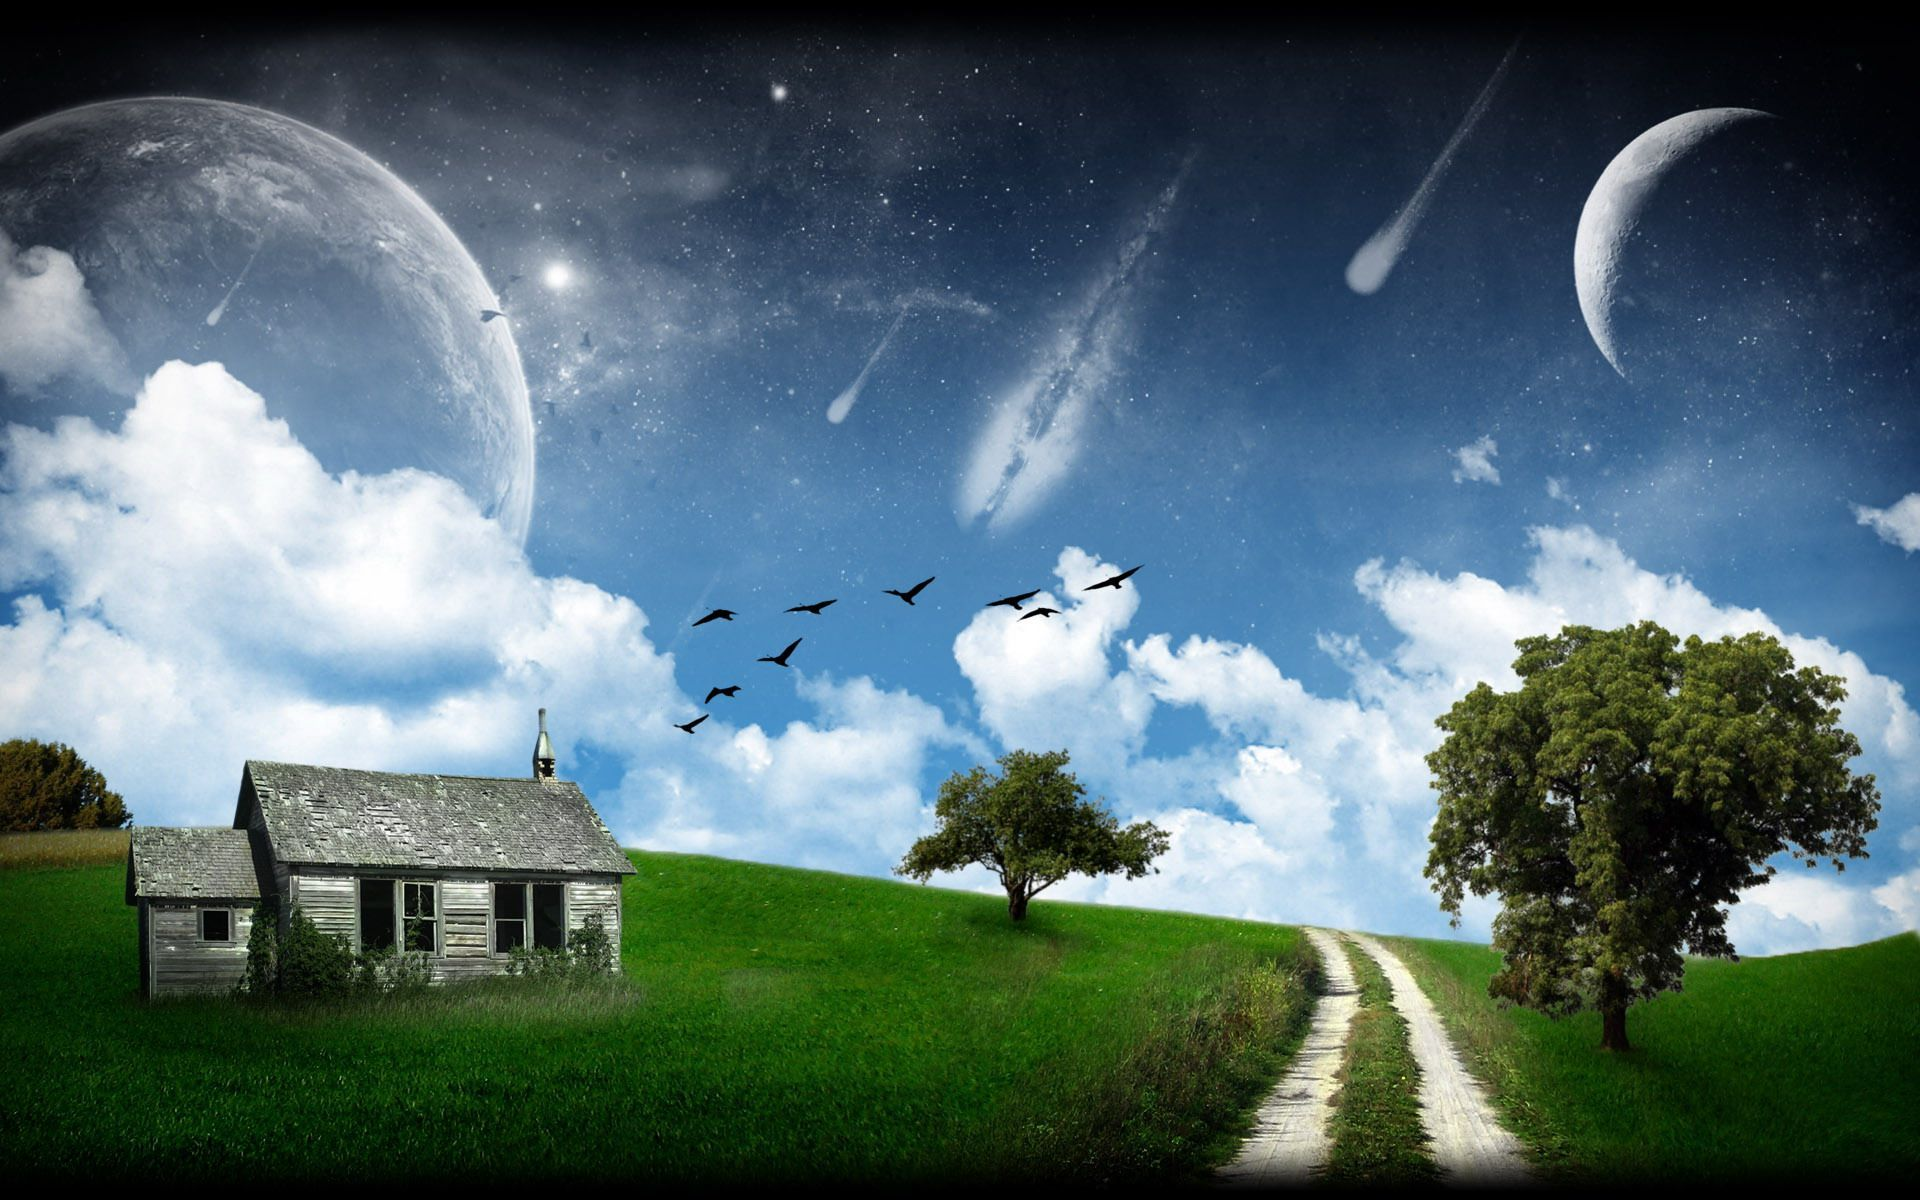 planets-in-the-sky-above-the-abandoned-house-13858.jpg